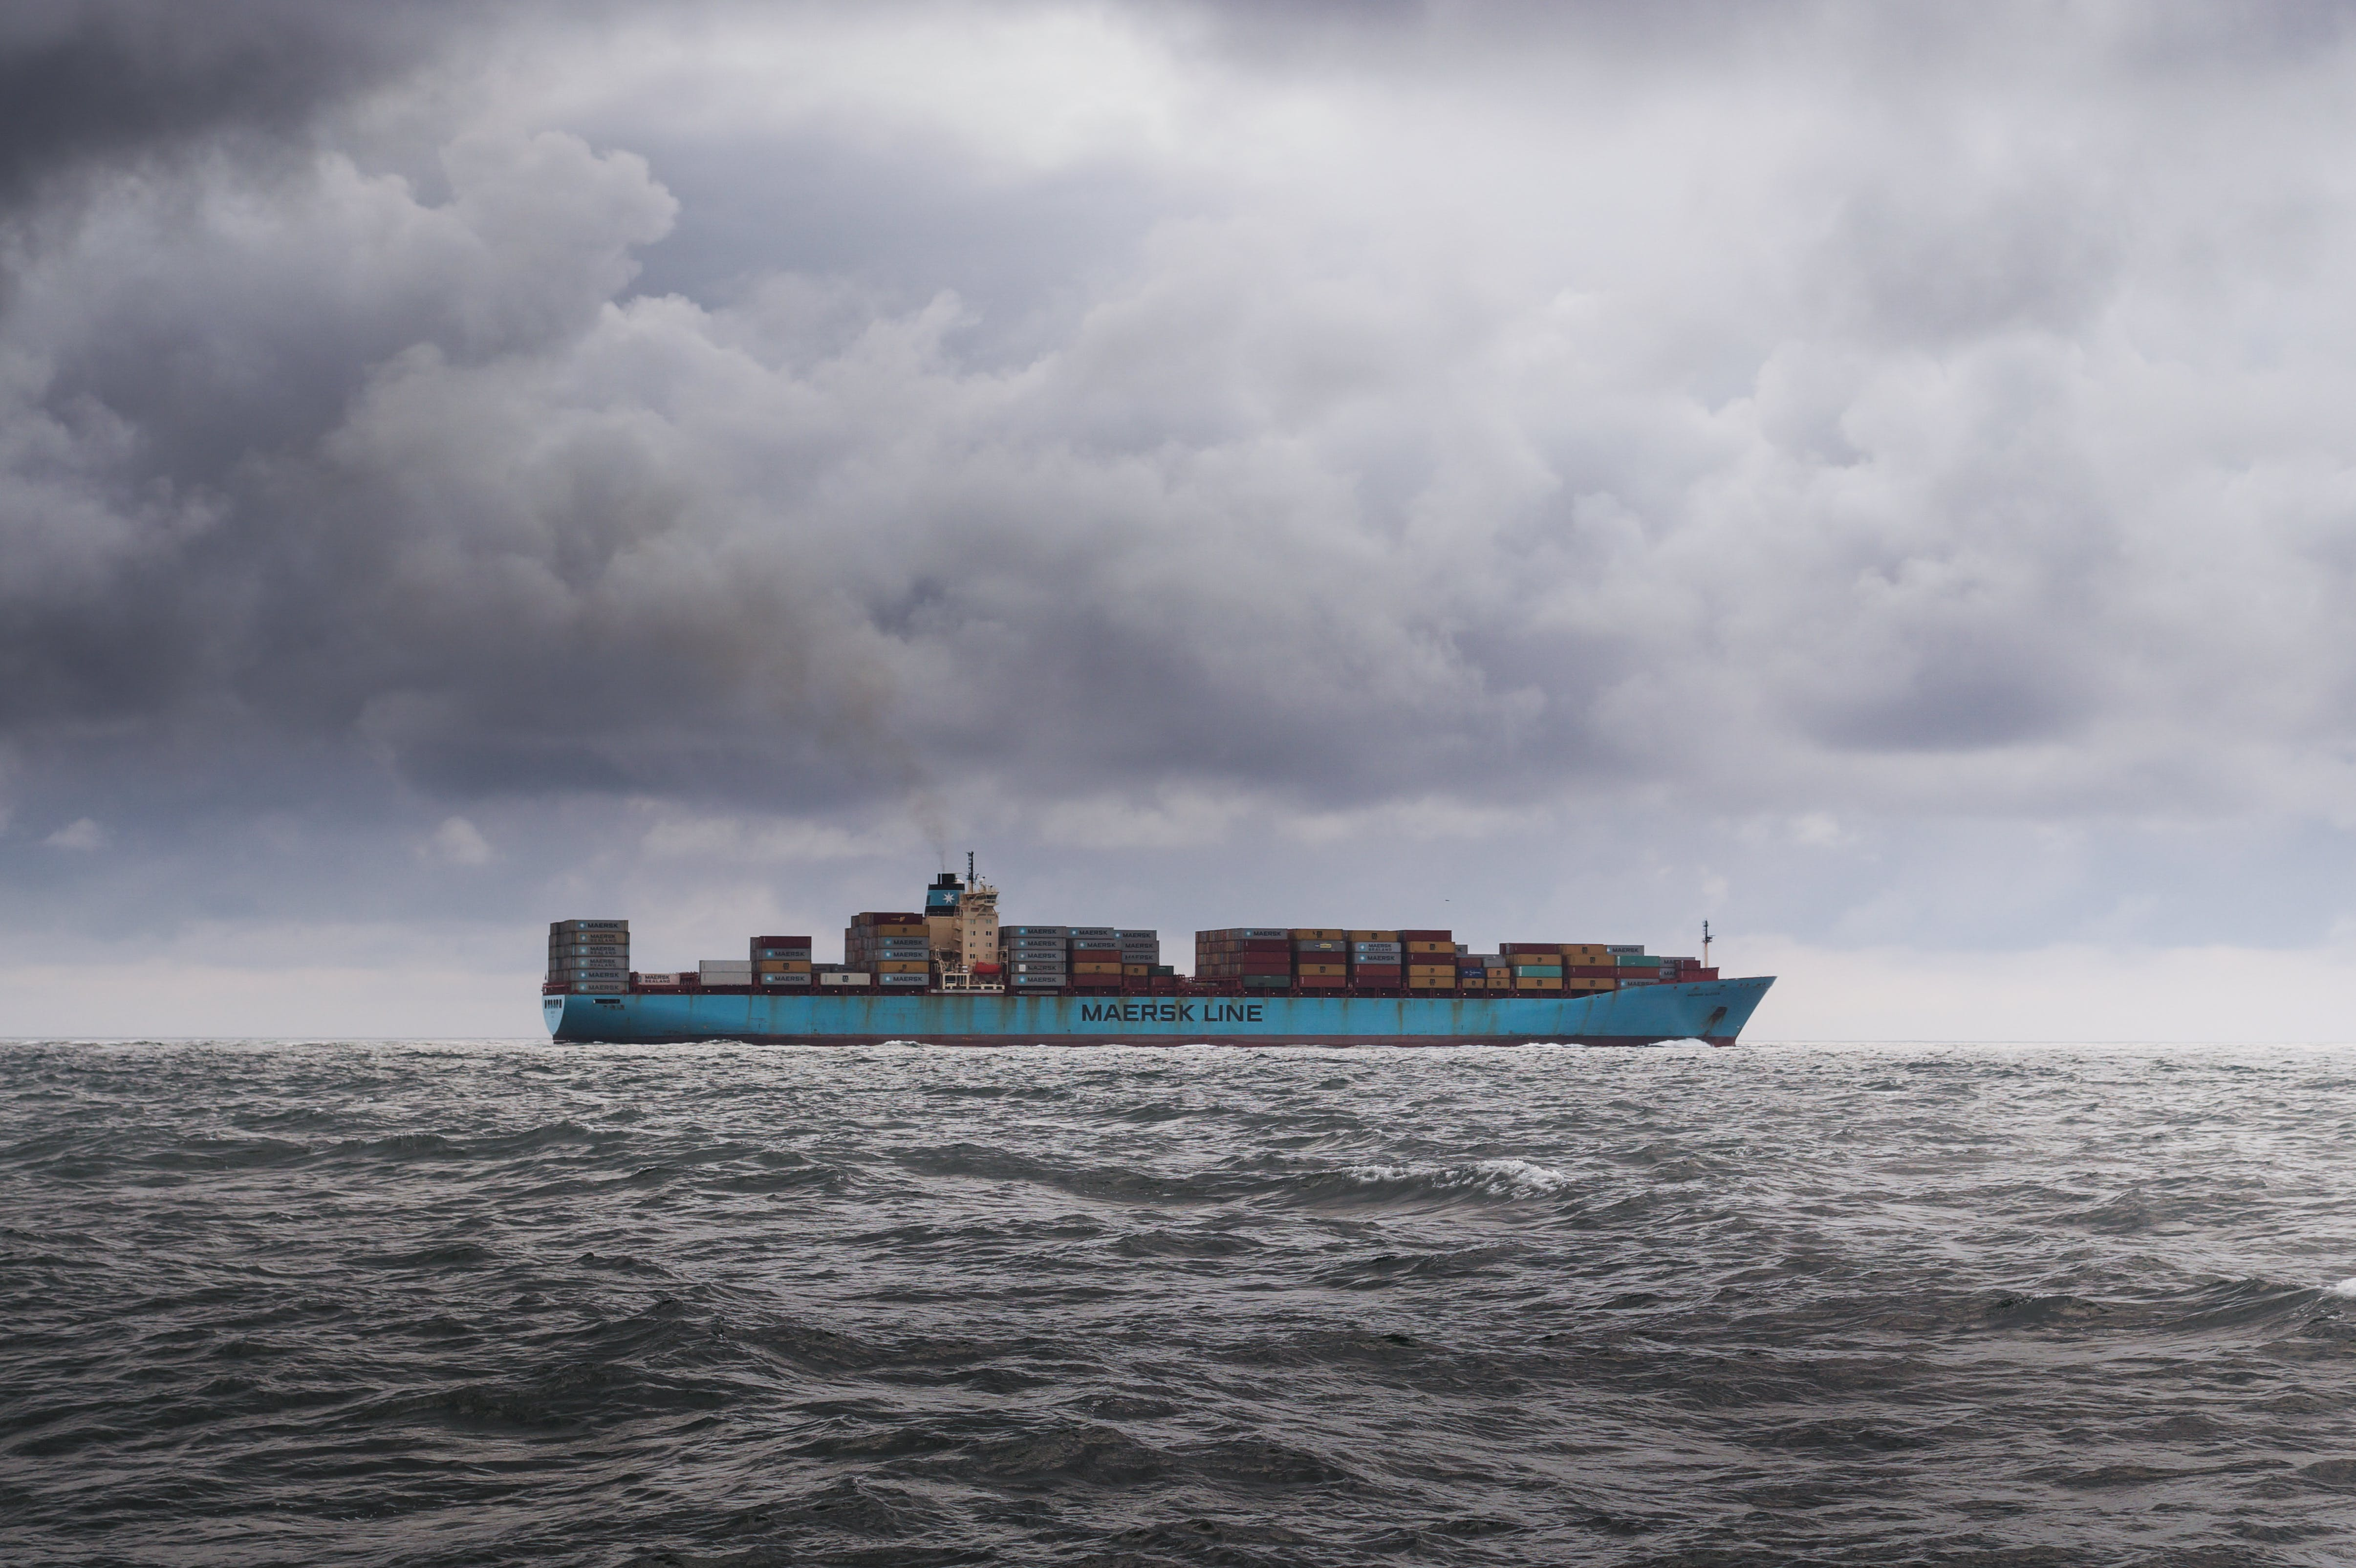 boat, clouds, containers